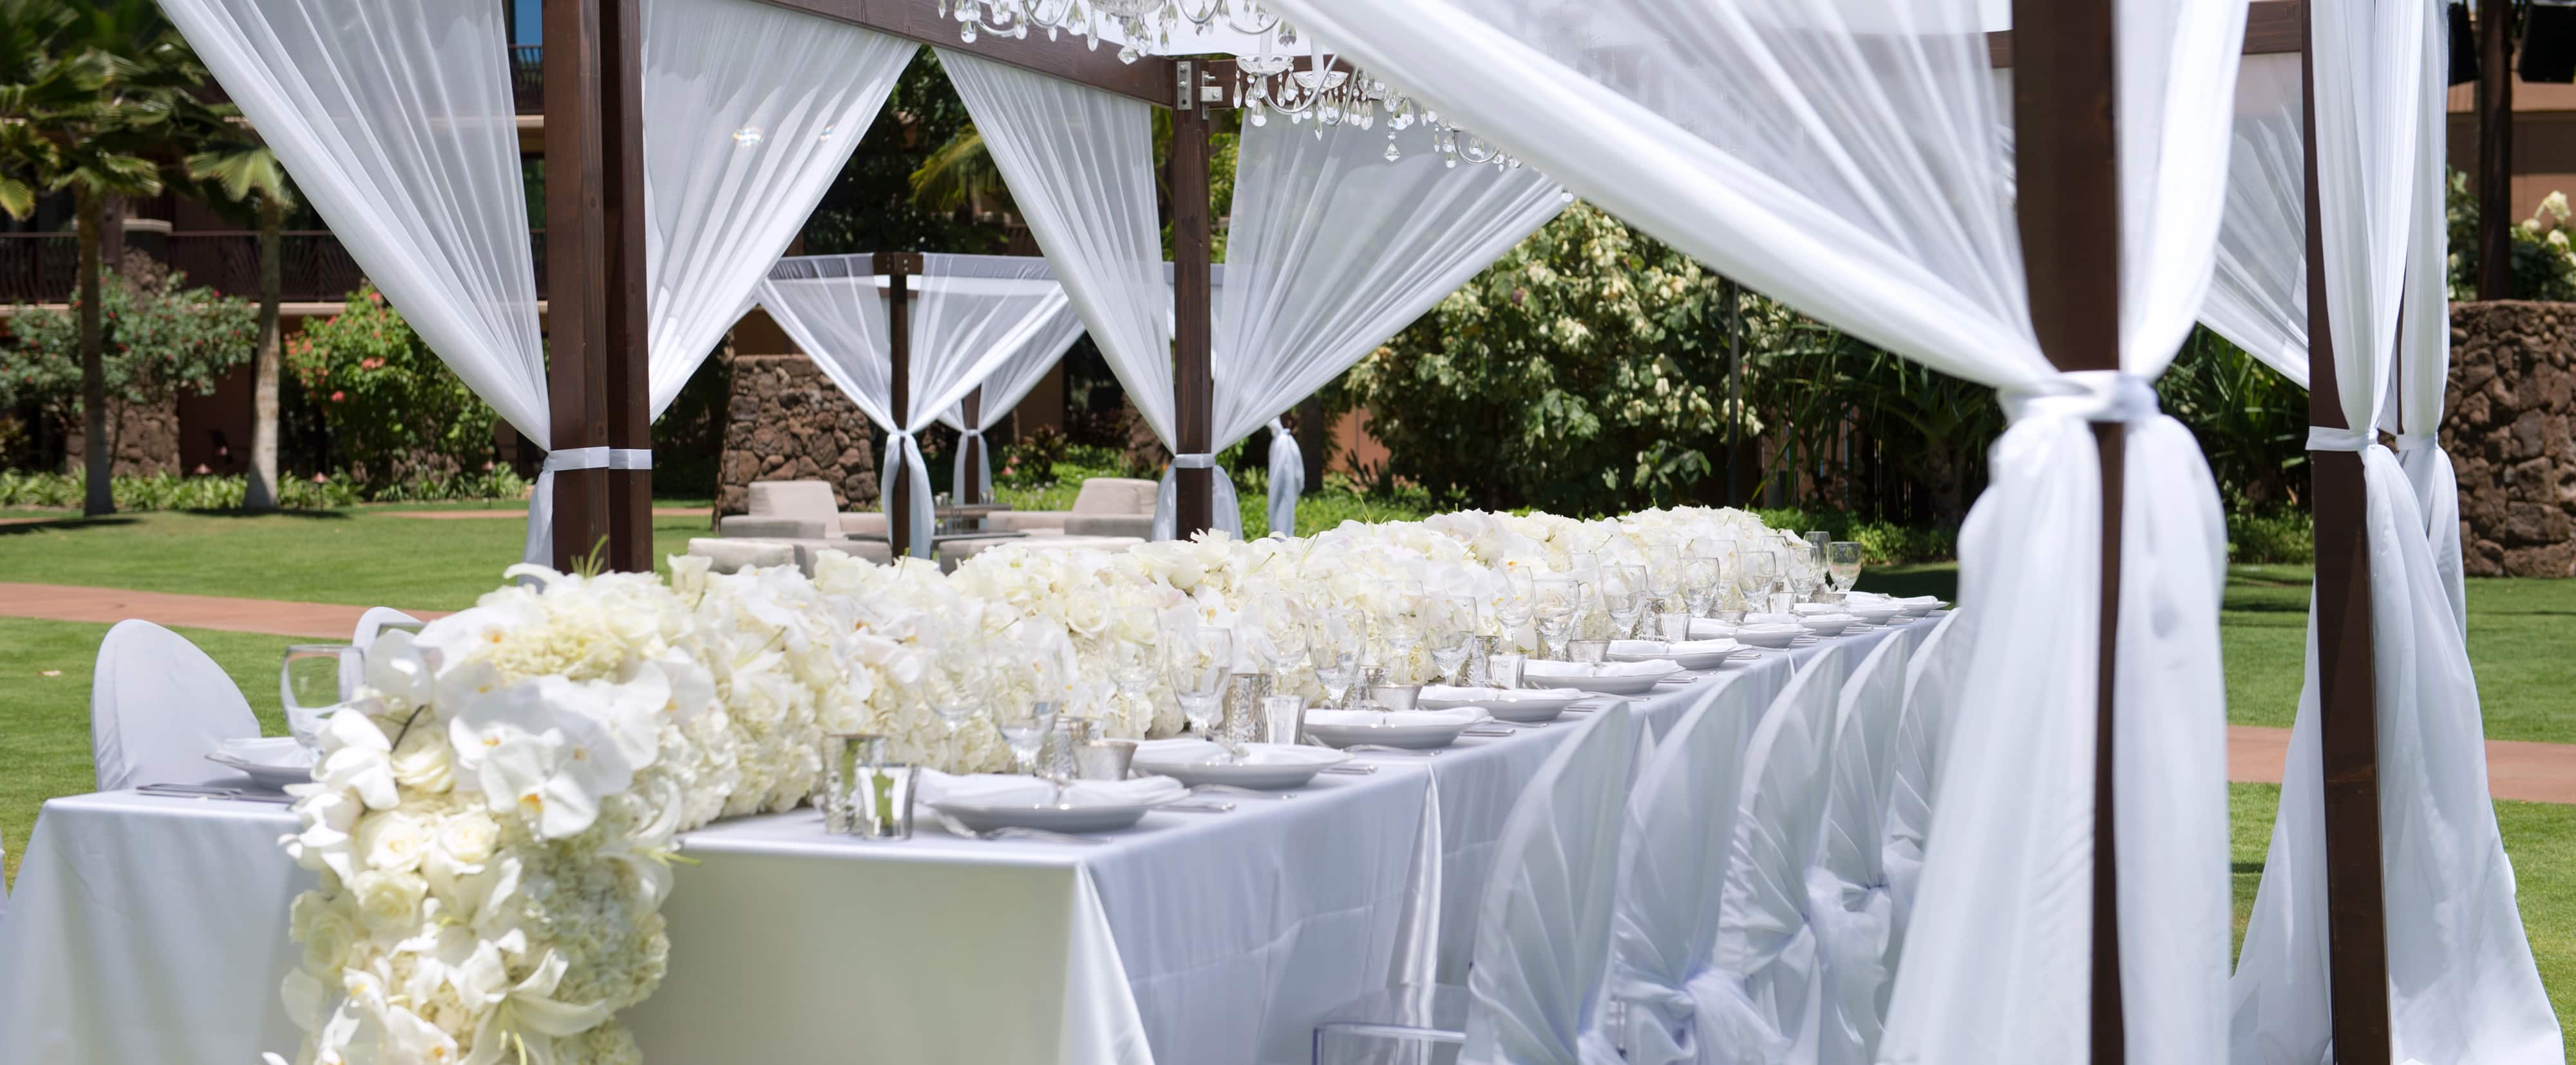 a wedding party banquet table decorated with a garland of white roses and orchids under a